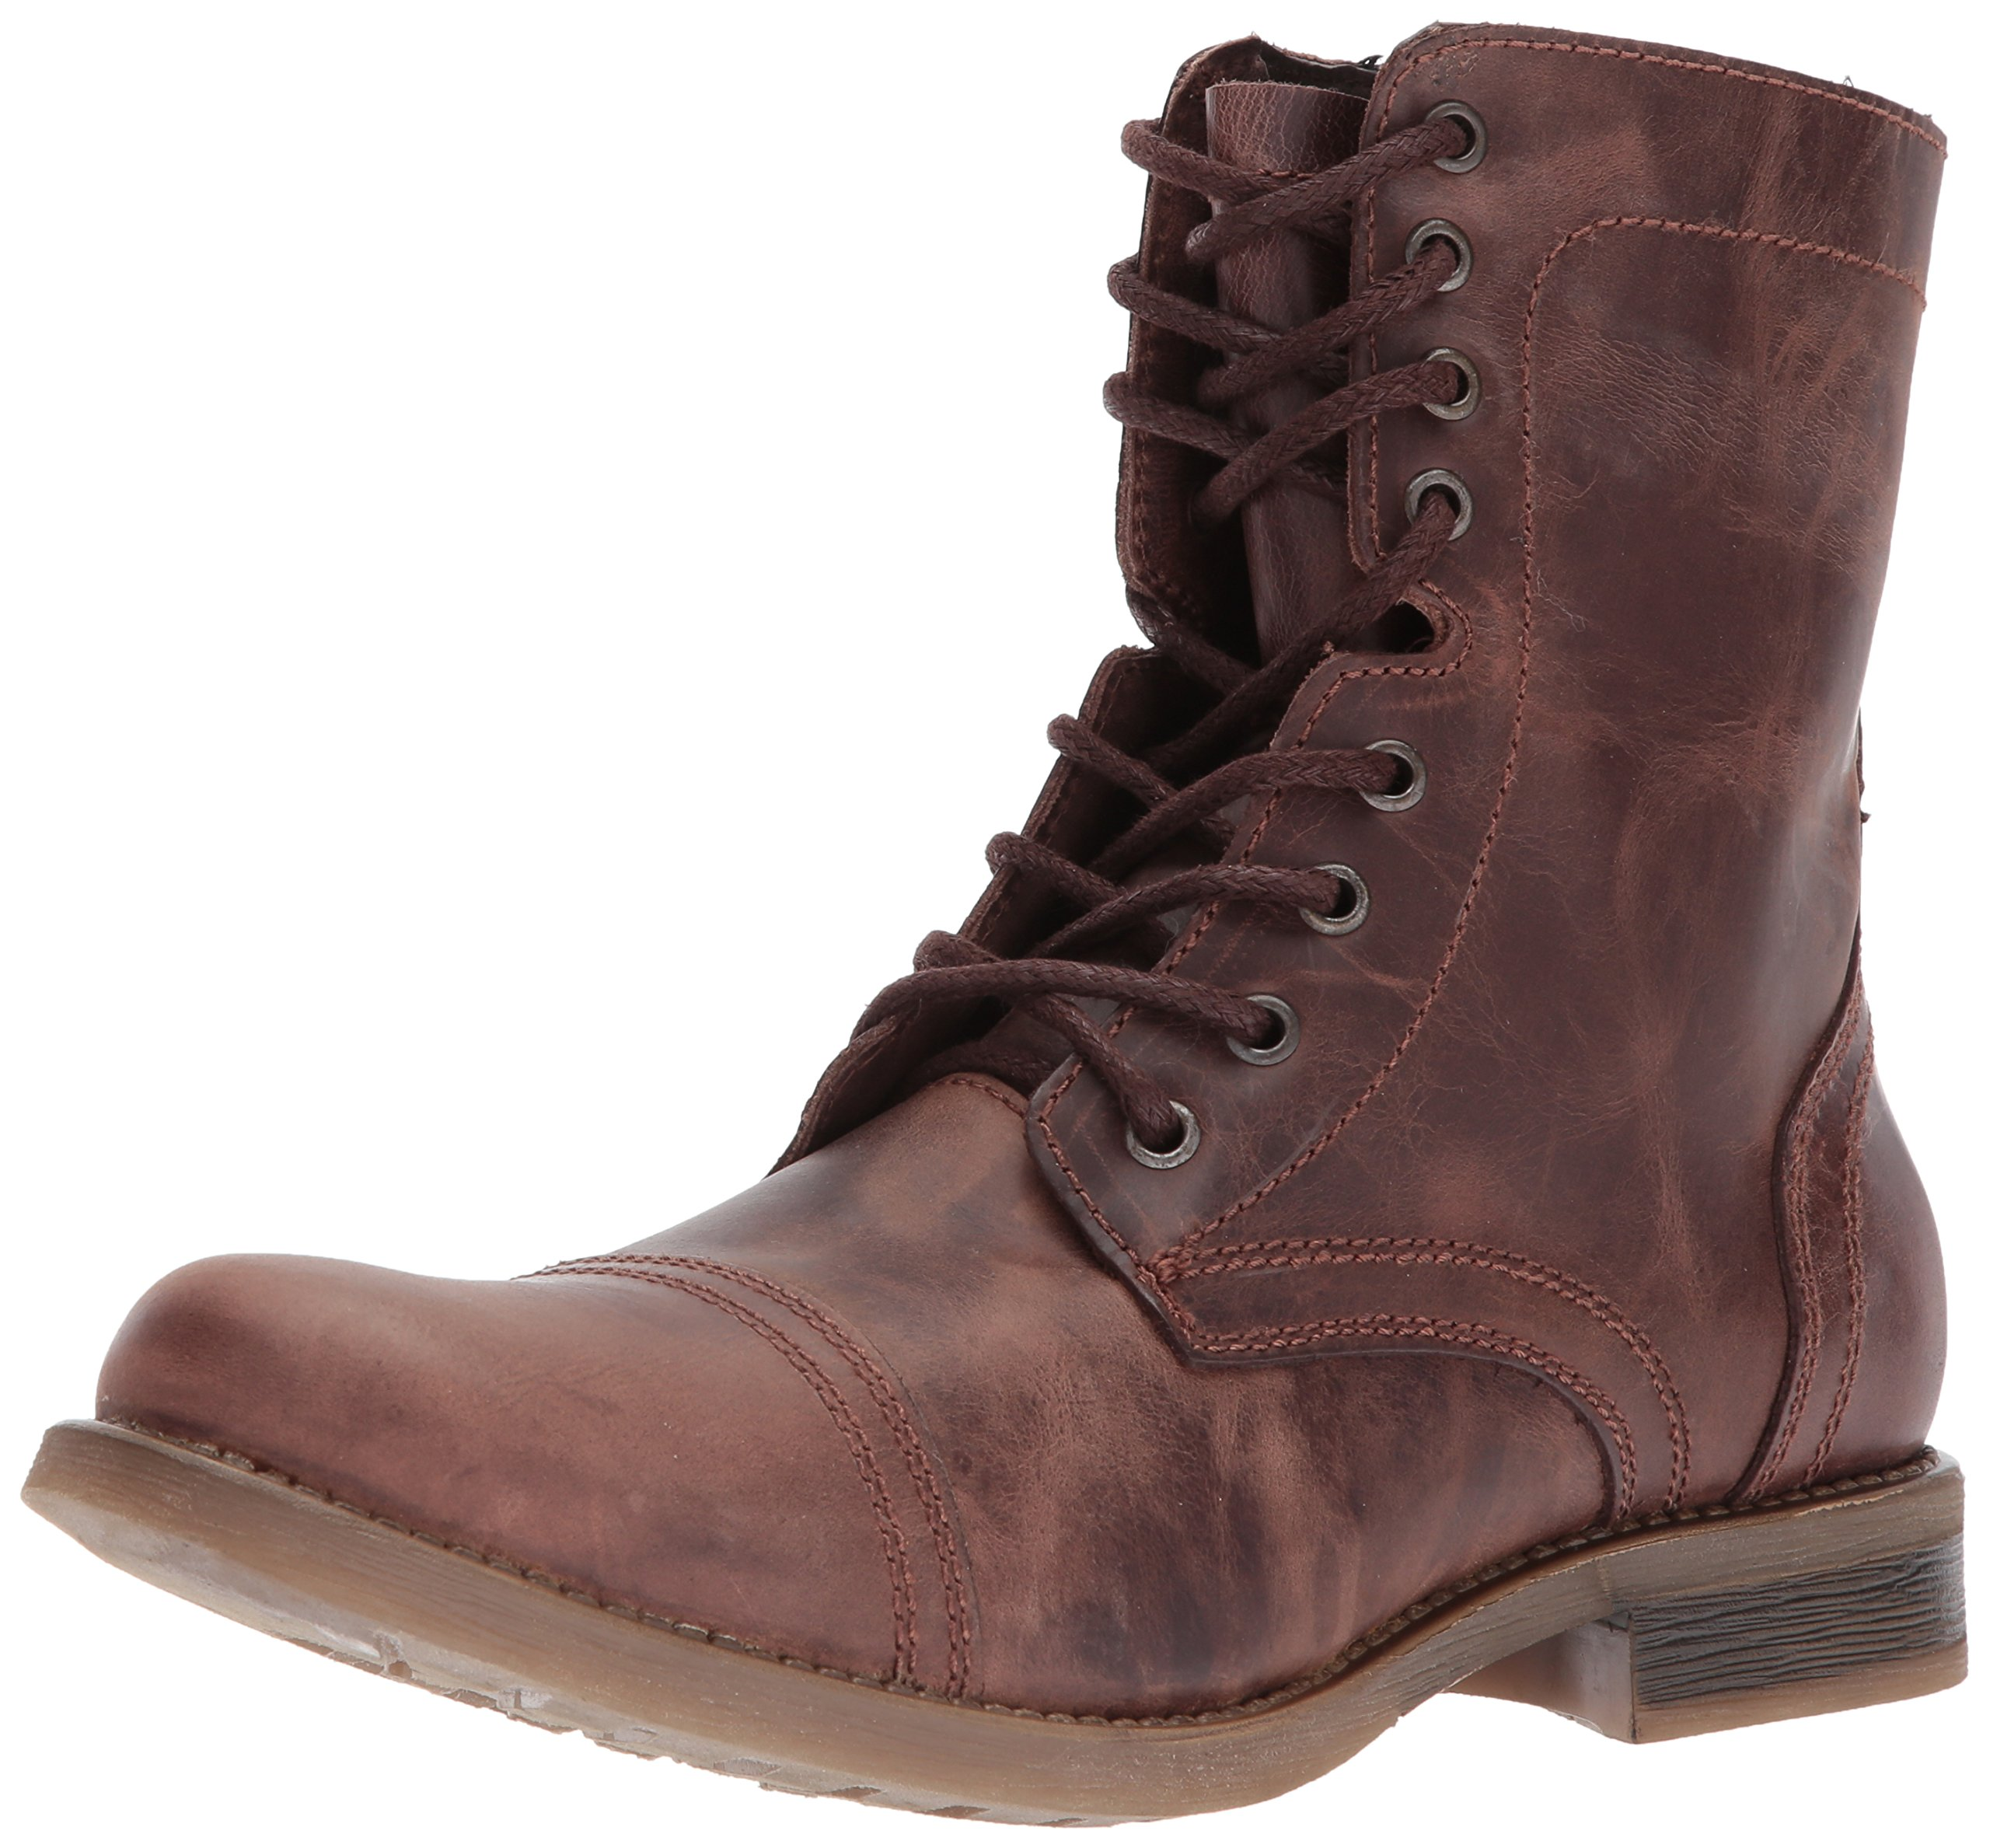 Steve Madden Men's TROOPAH-C Combat Boot, Brown Leather, 10.5 M US by Steve Madden